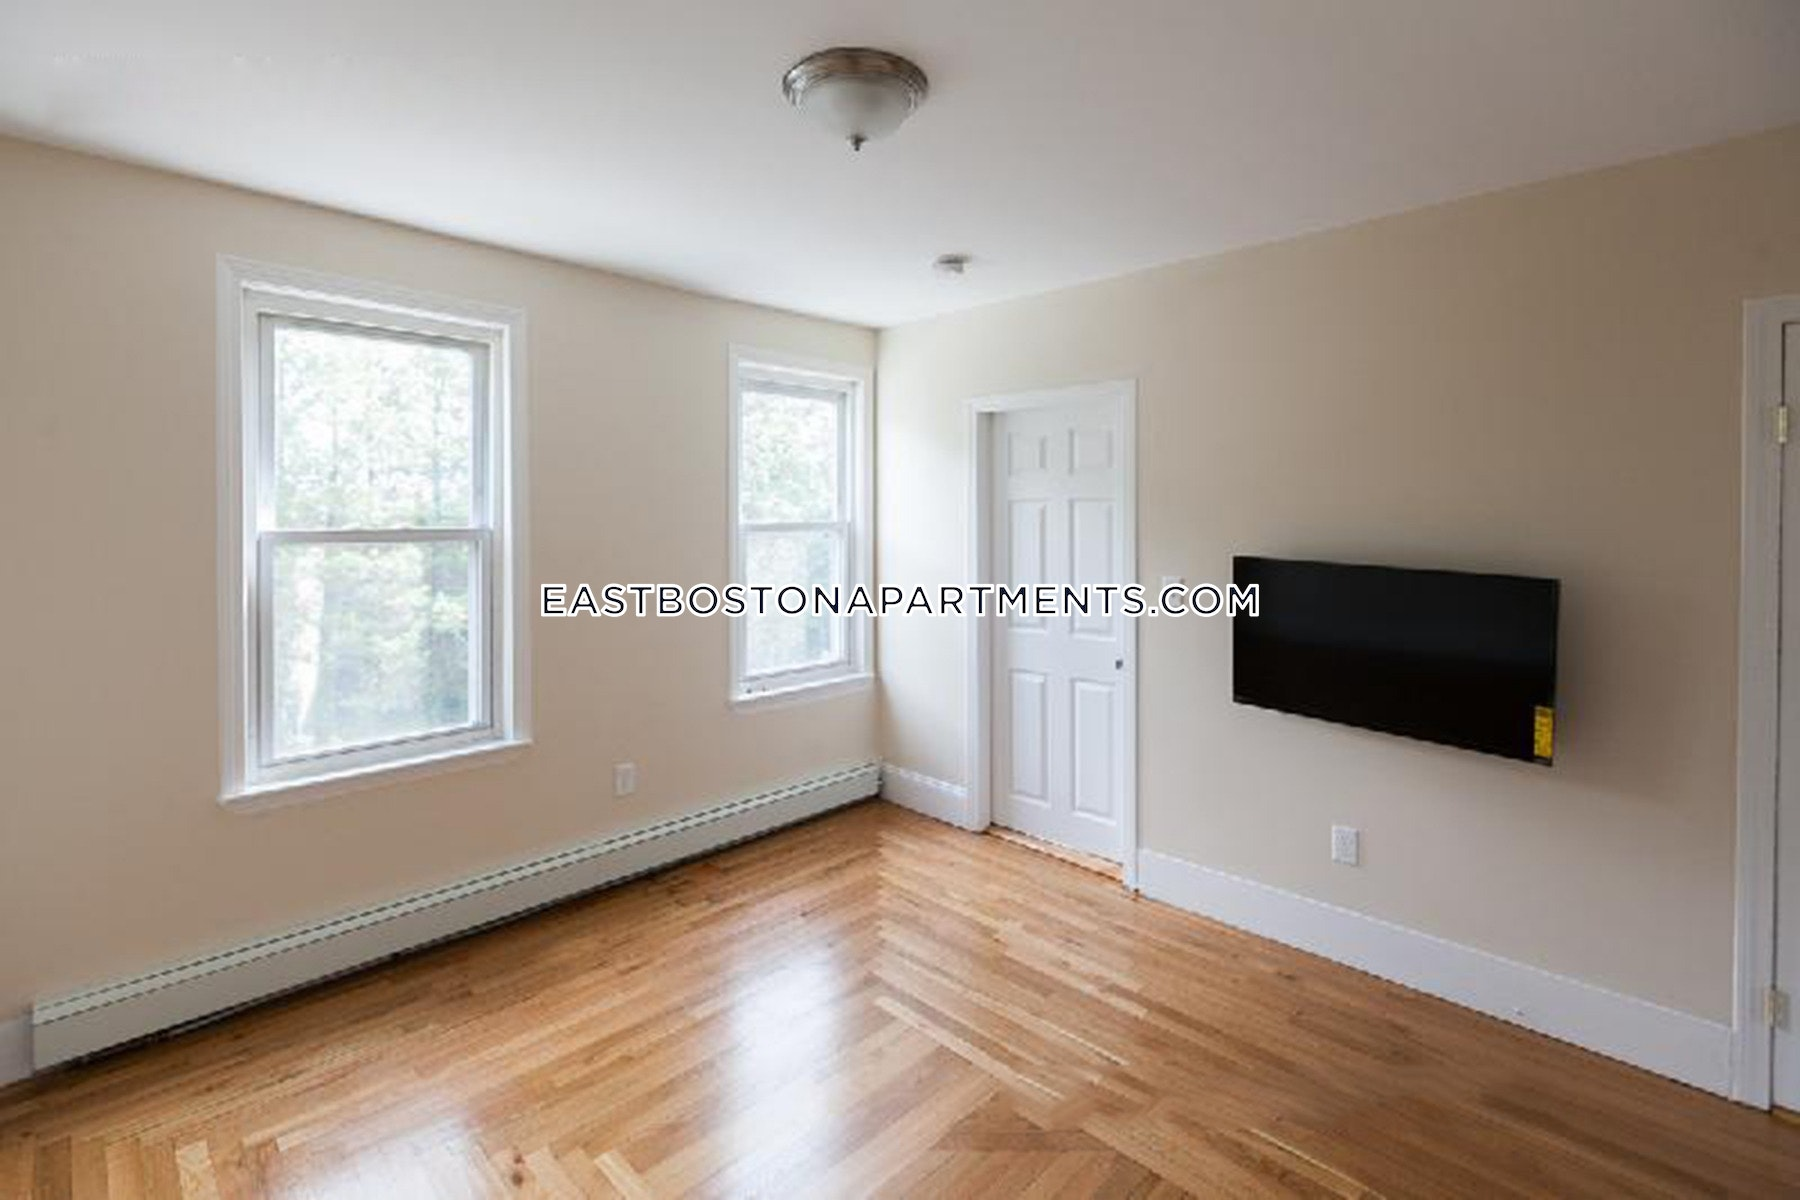 East Boston Apartment For Rent 2 Bedrooms 1 Bath 050